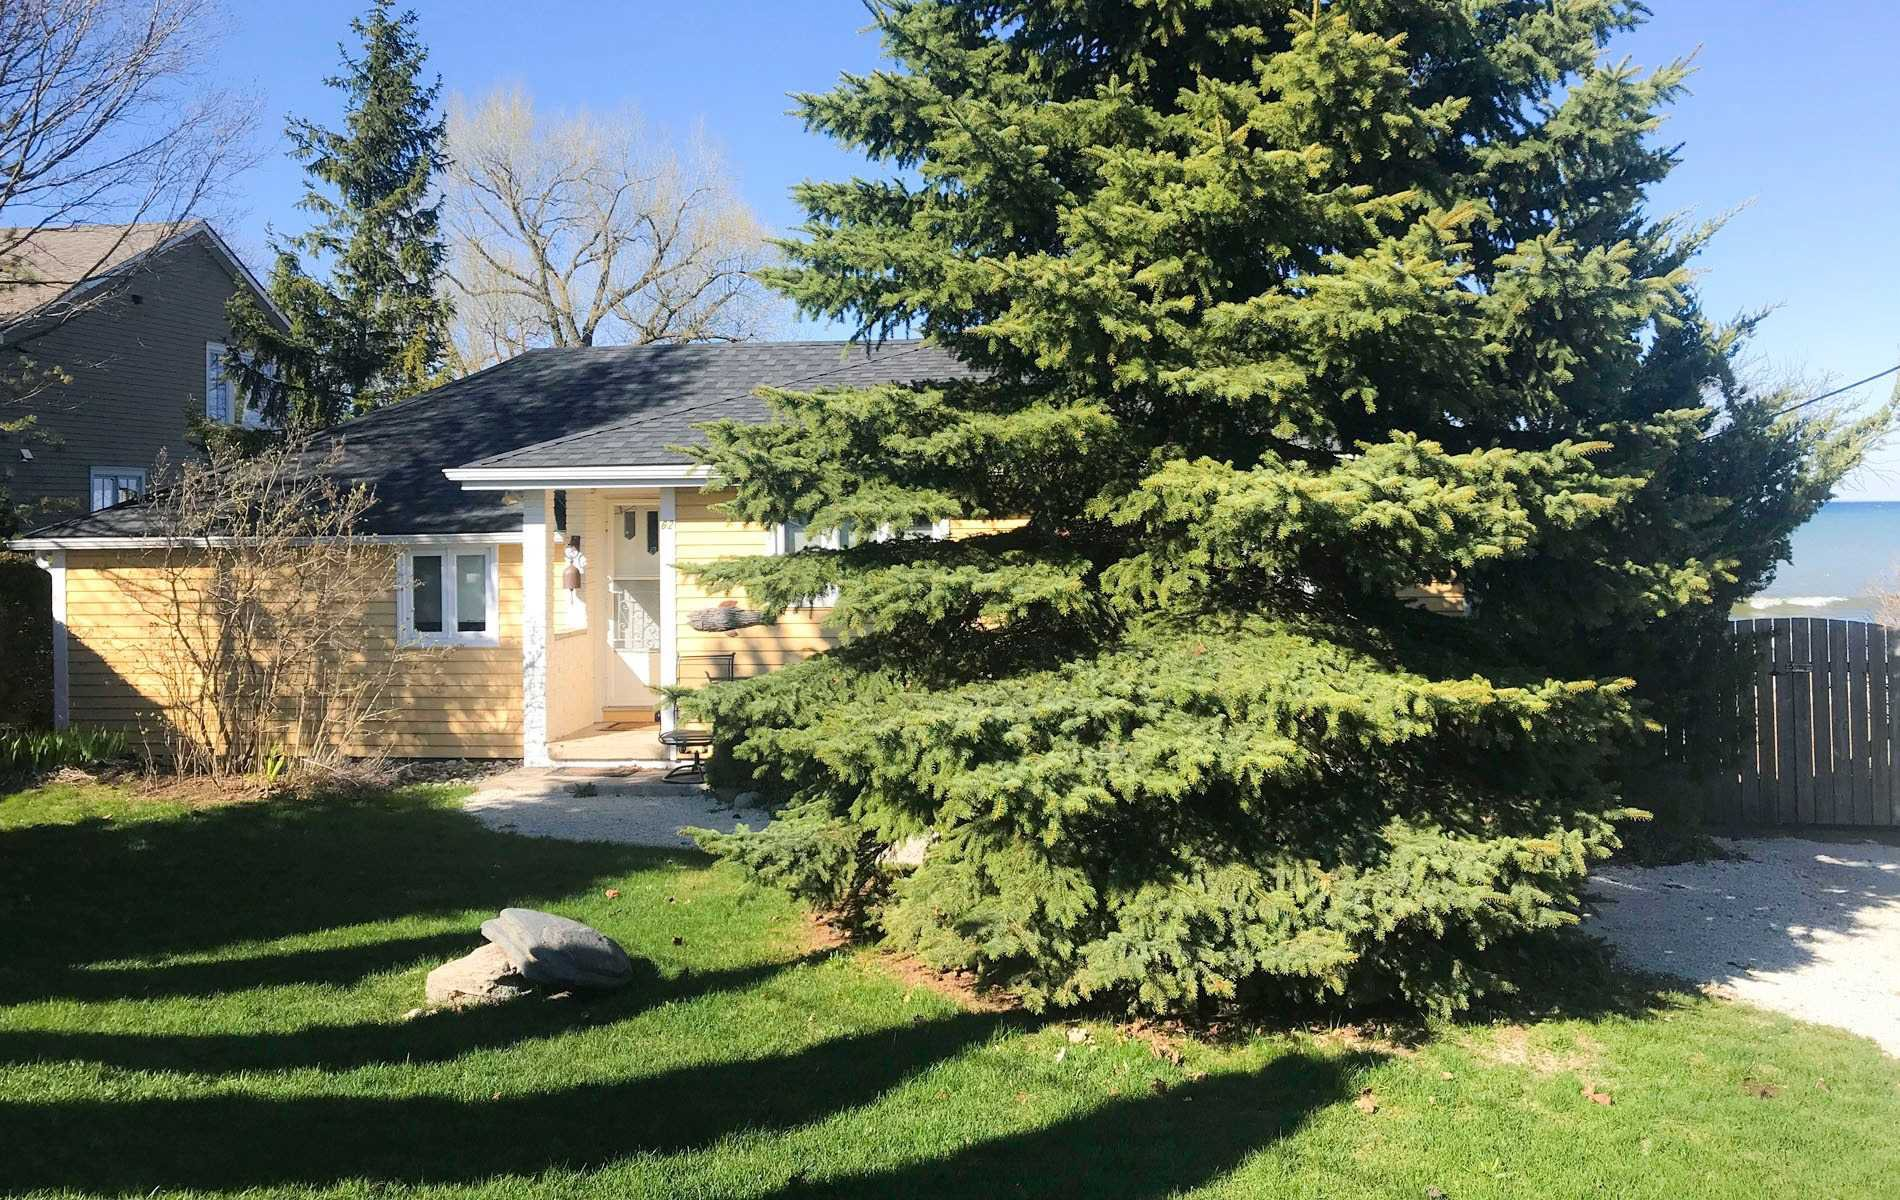 Photo 3: Photos: 62 Cottage Avenue in Blue Mountains: Thornbury House (Bungalow) for lease : MLS®# X4754668